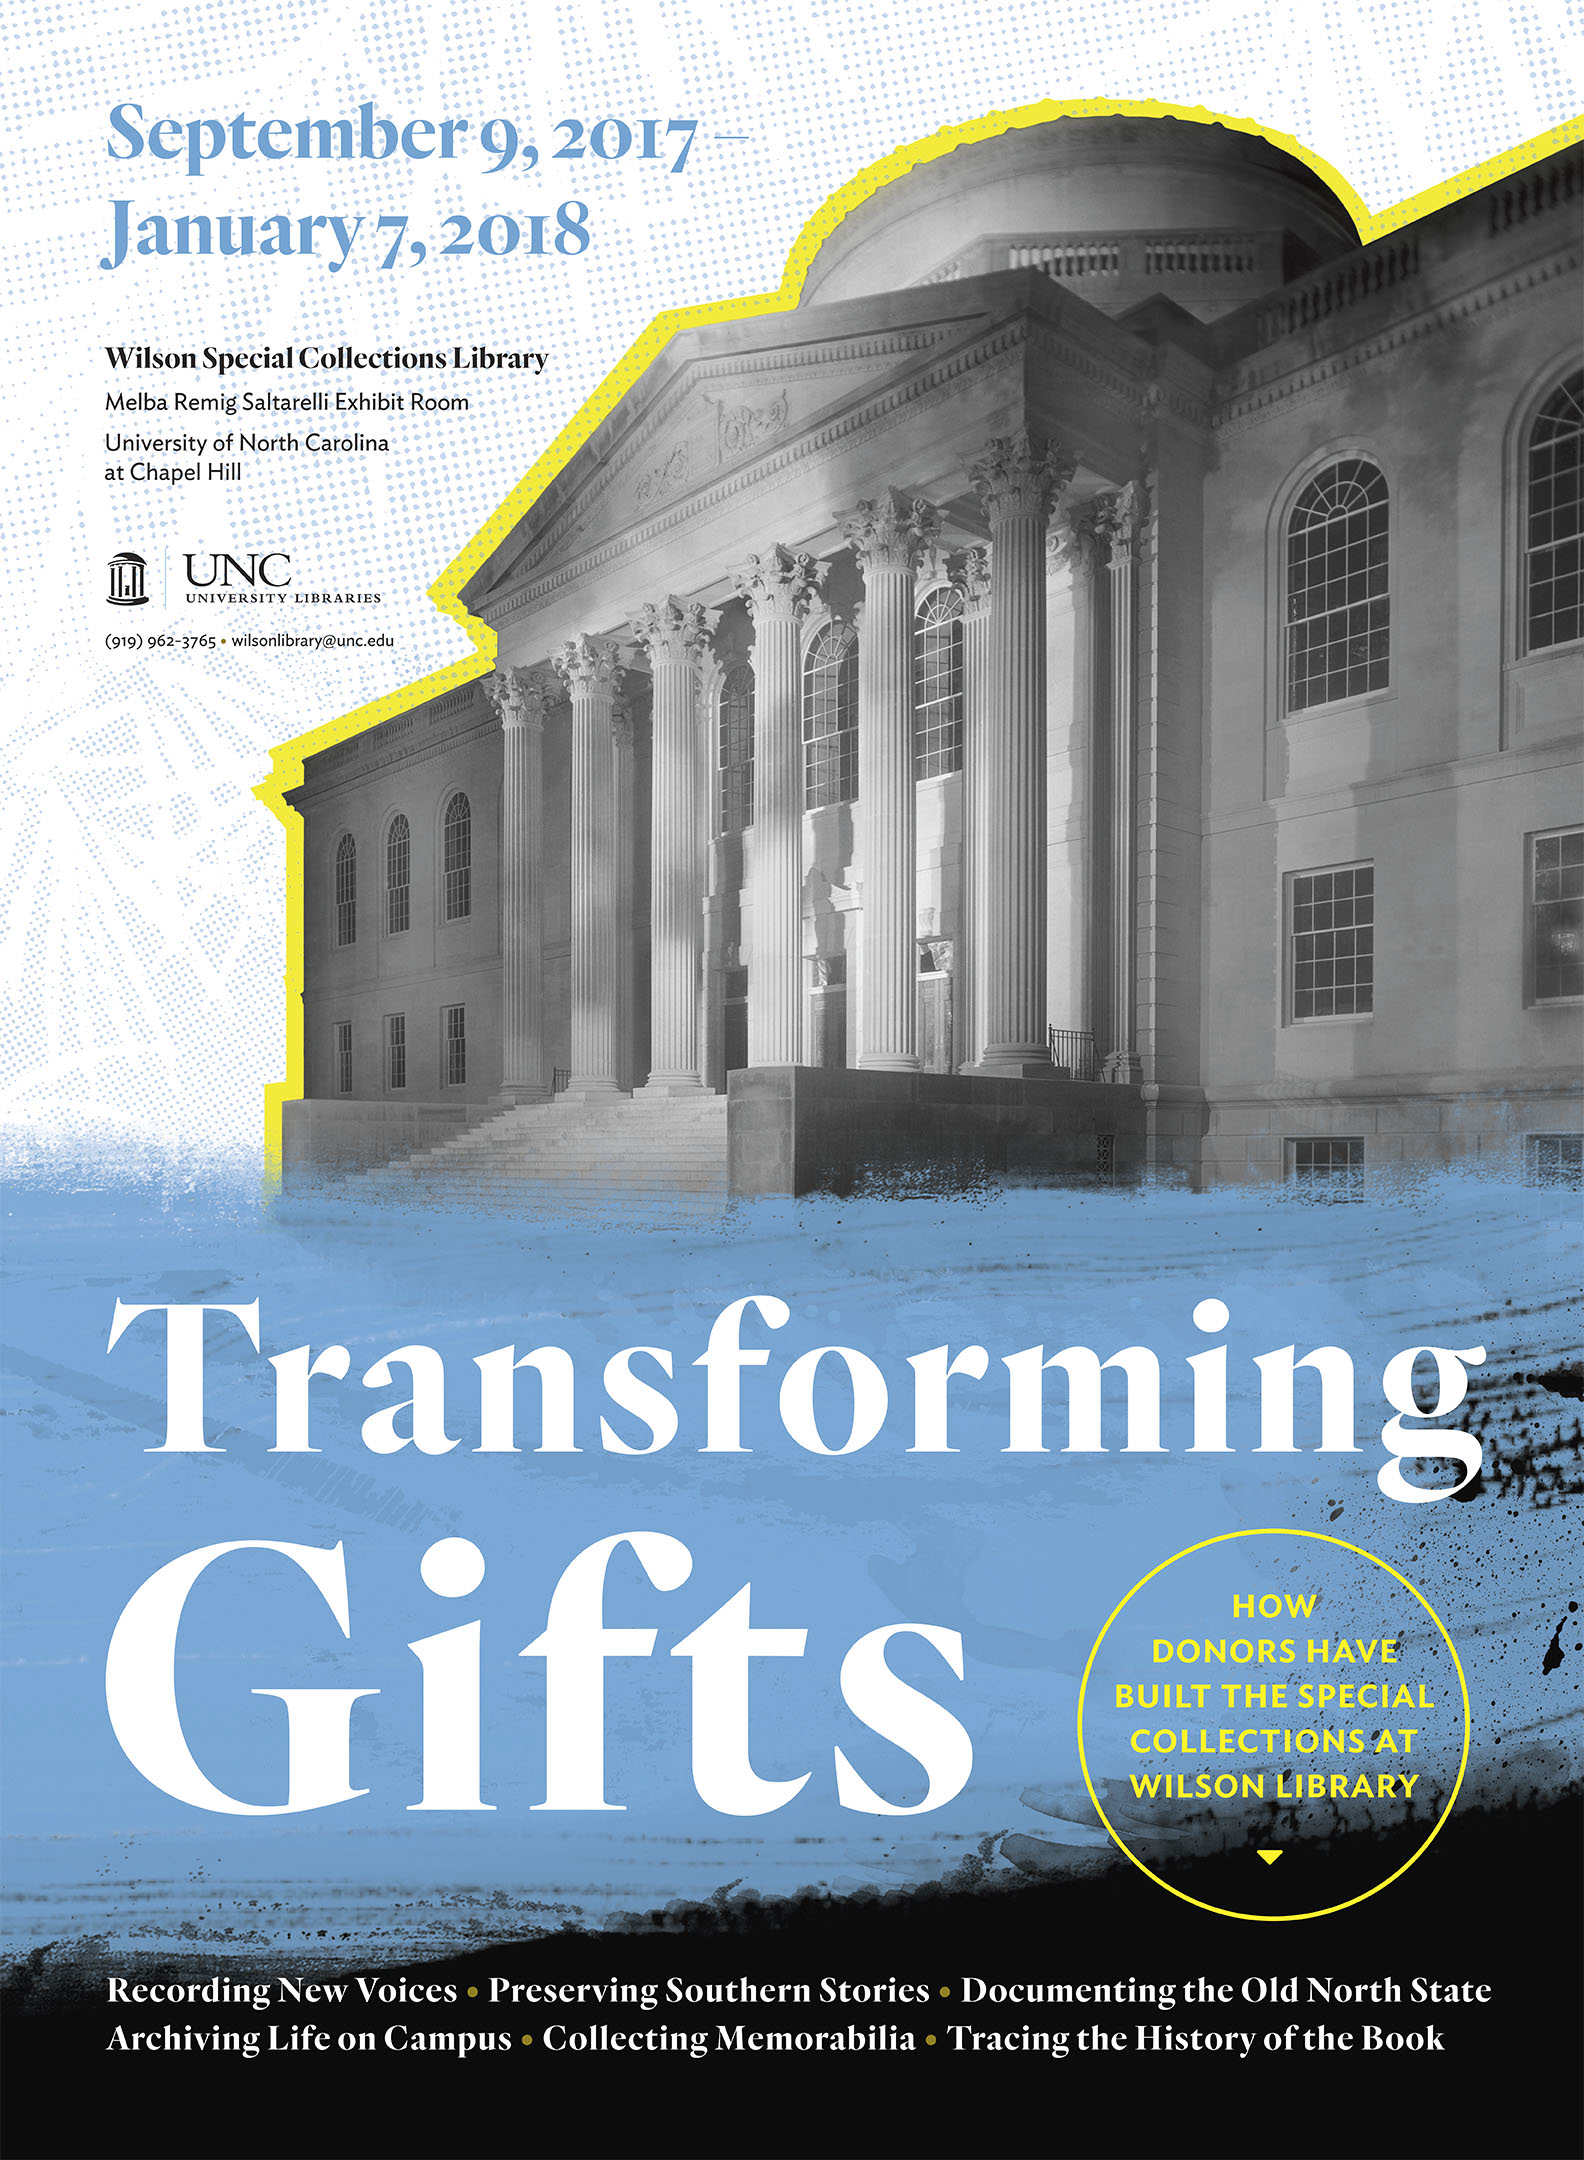 poster that advertised the Transforming Gifts exhibition. It shows an image of the Wilson Library outlined in yellow.